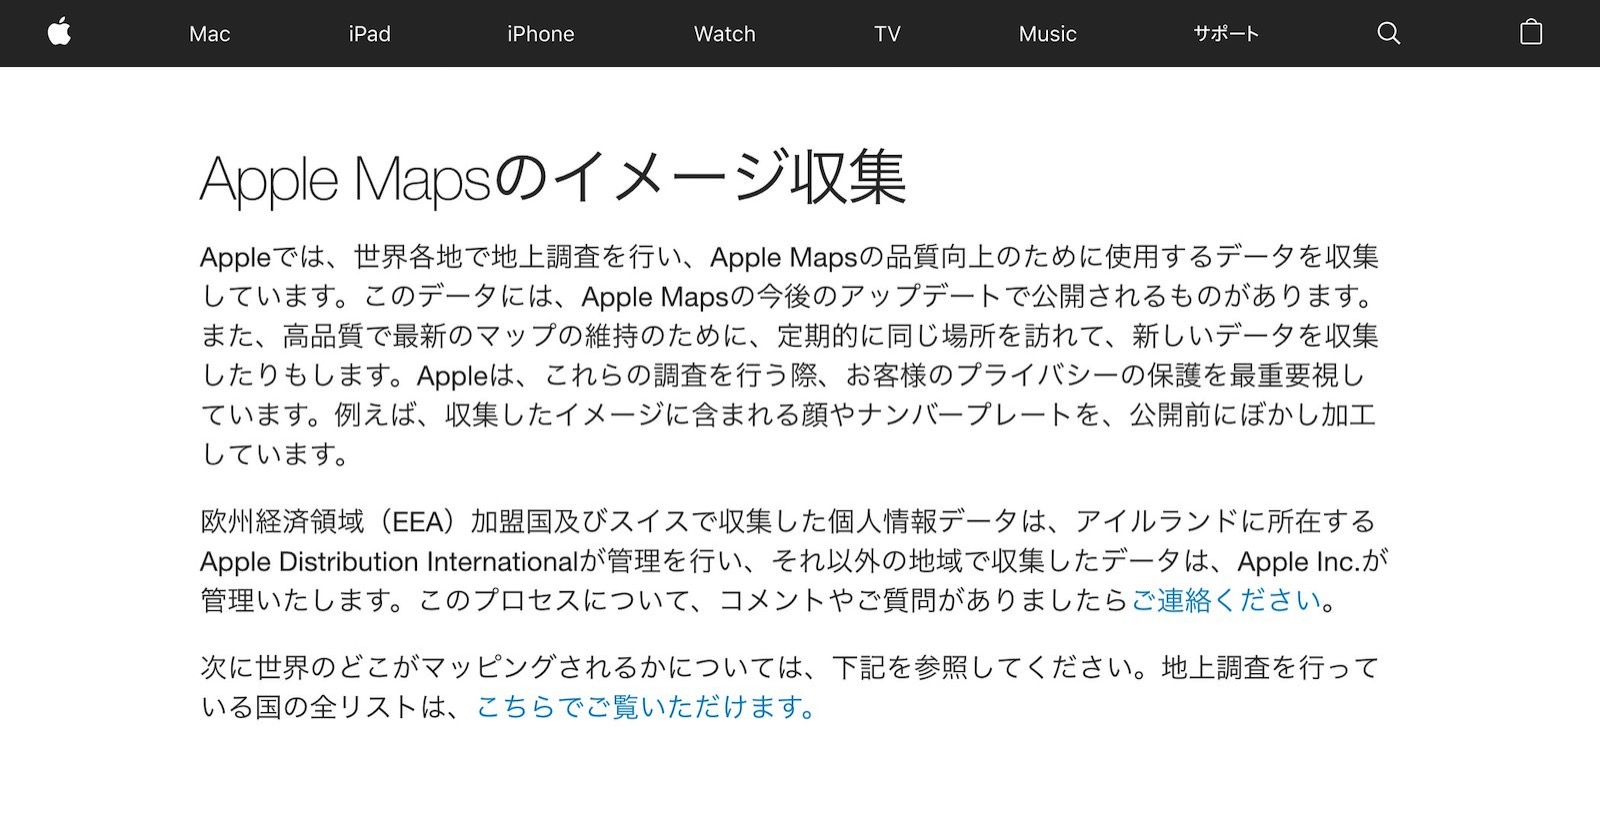 Apple-Maps-Images-Collection-Japan.jpg